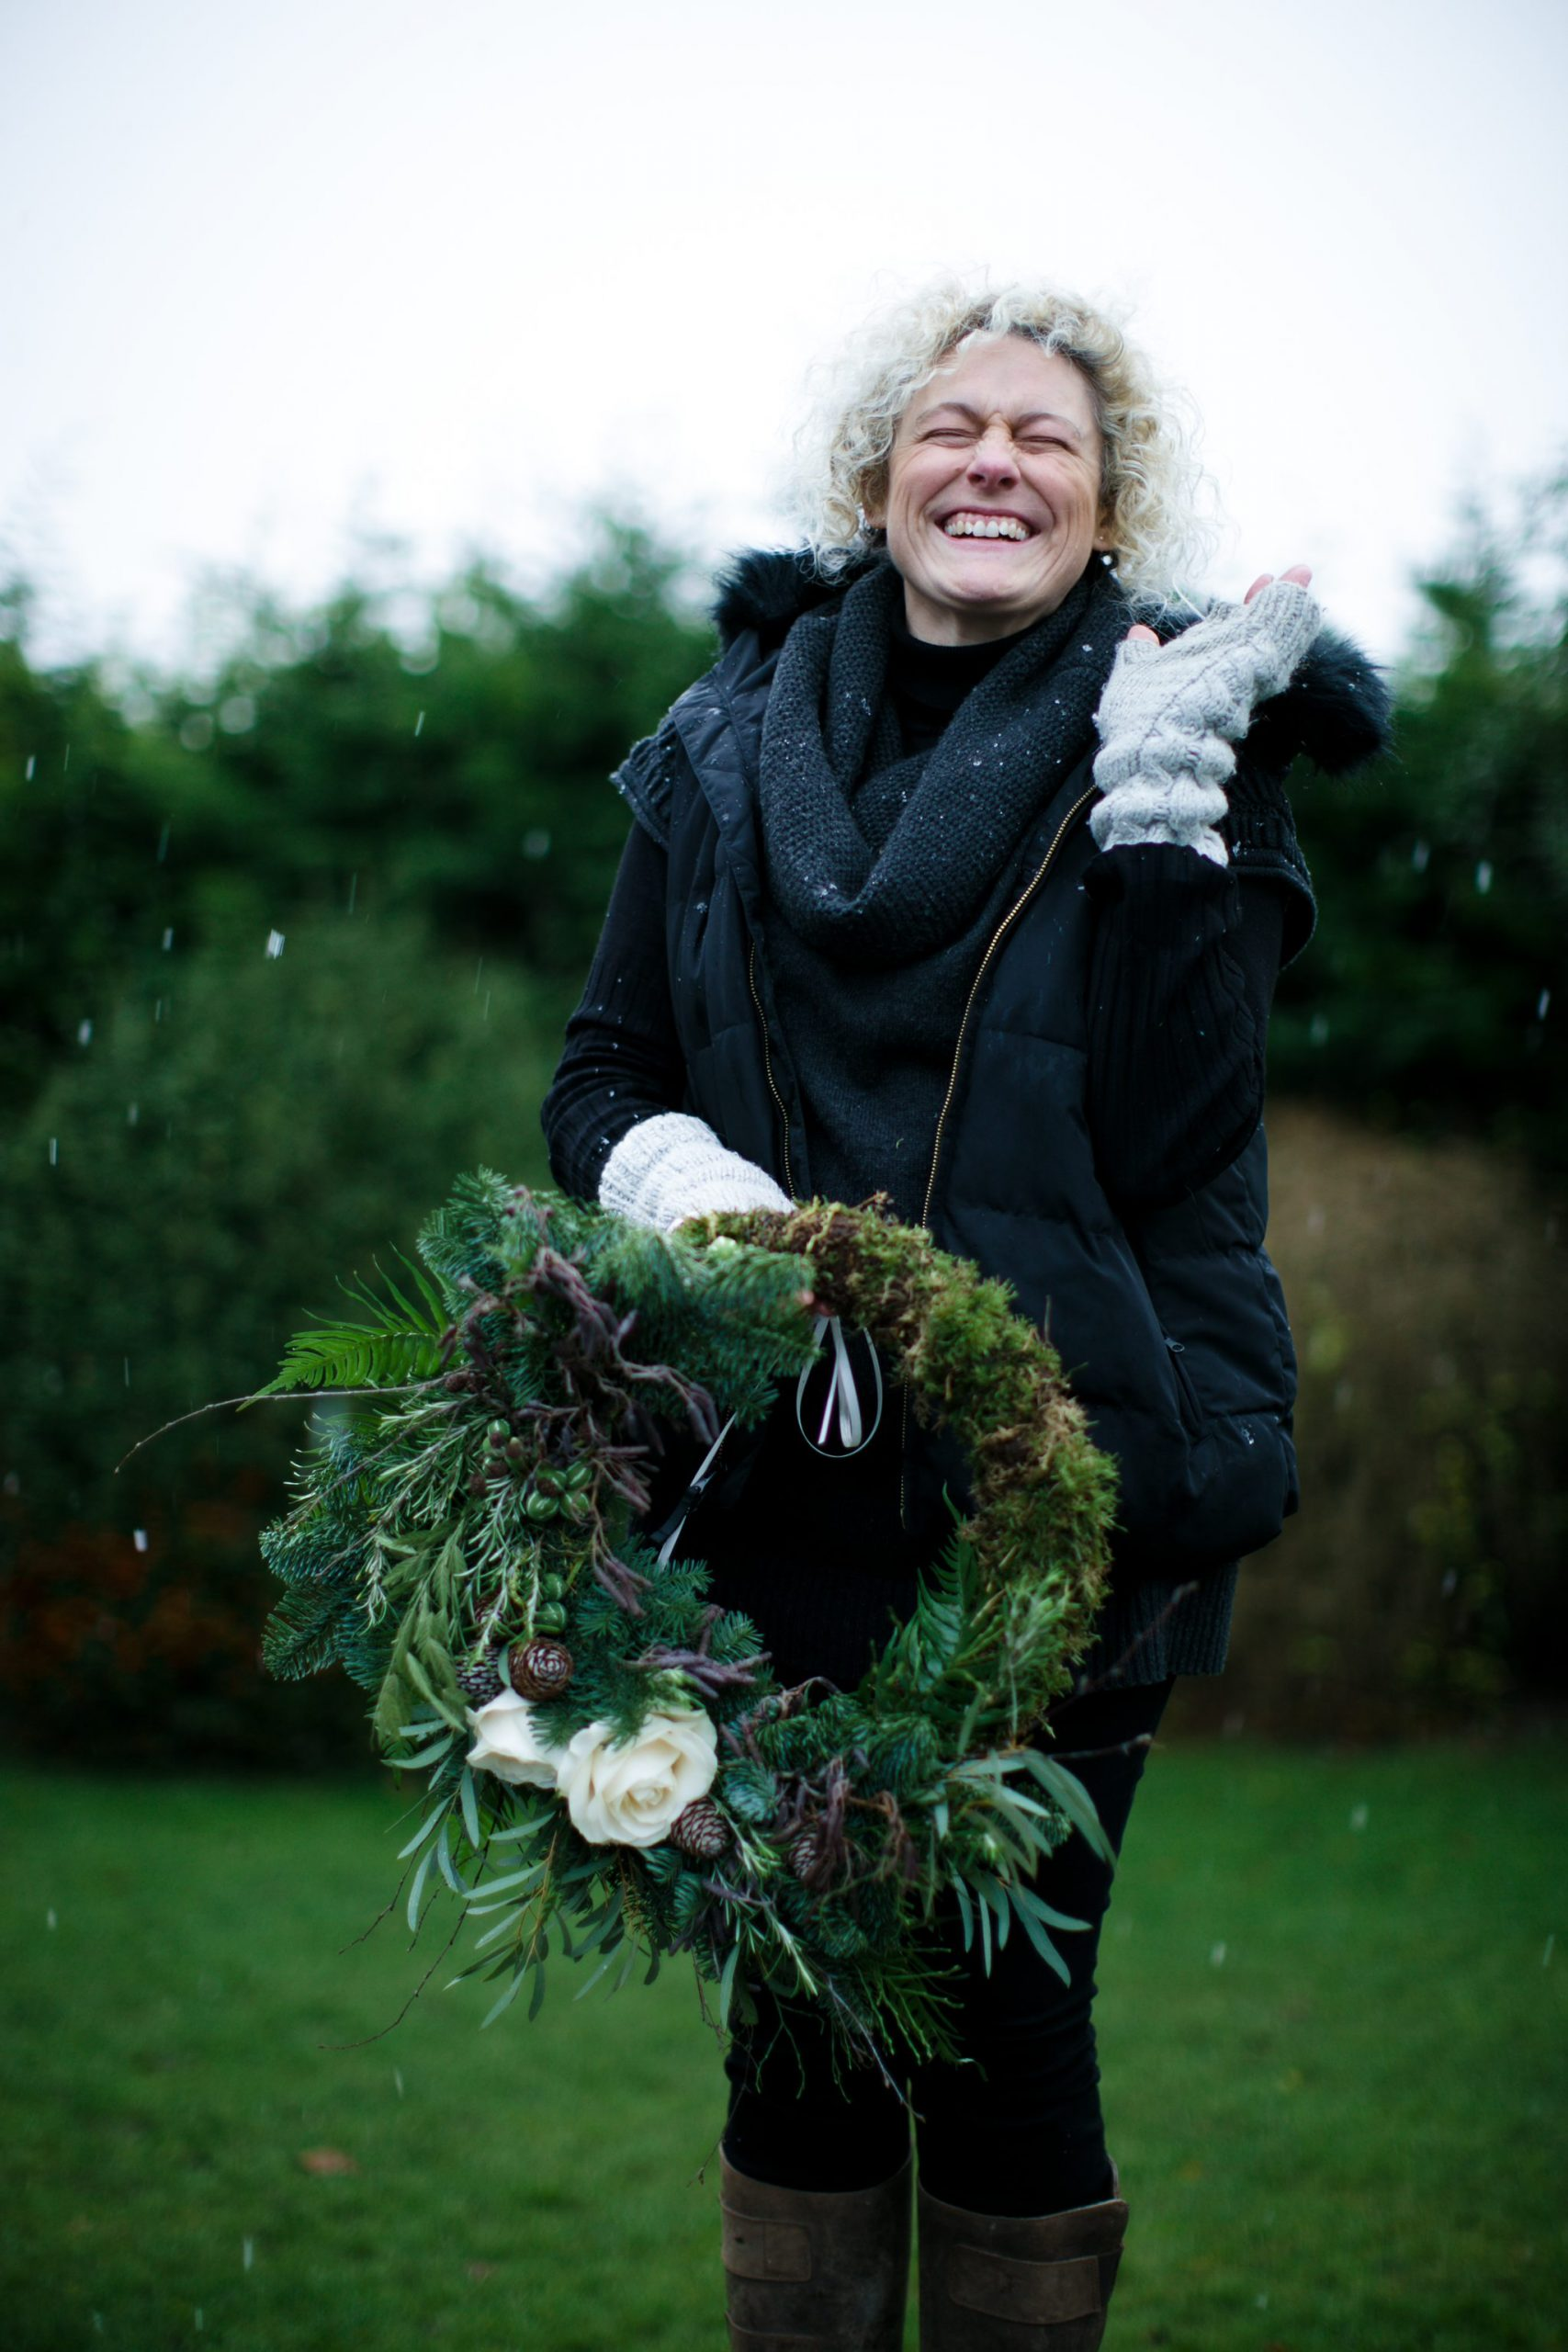 wild and co florist laughing with snow